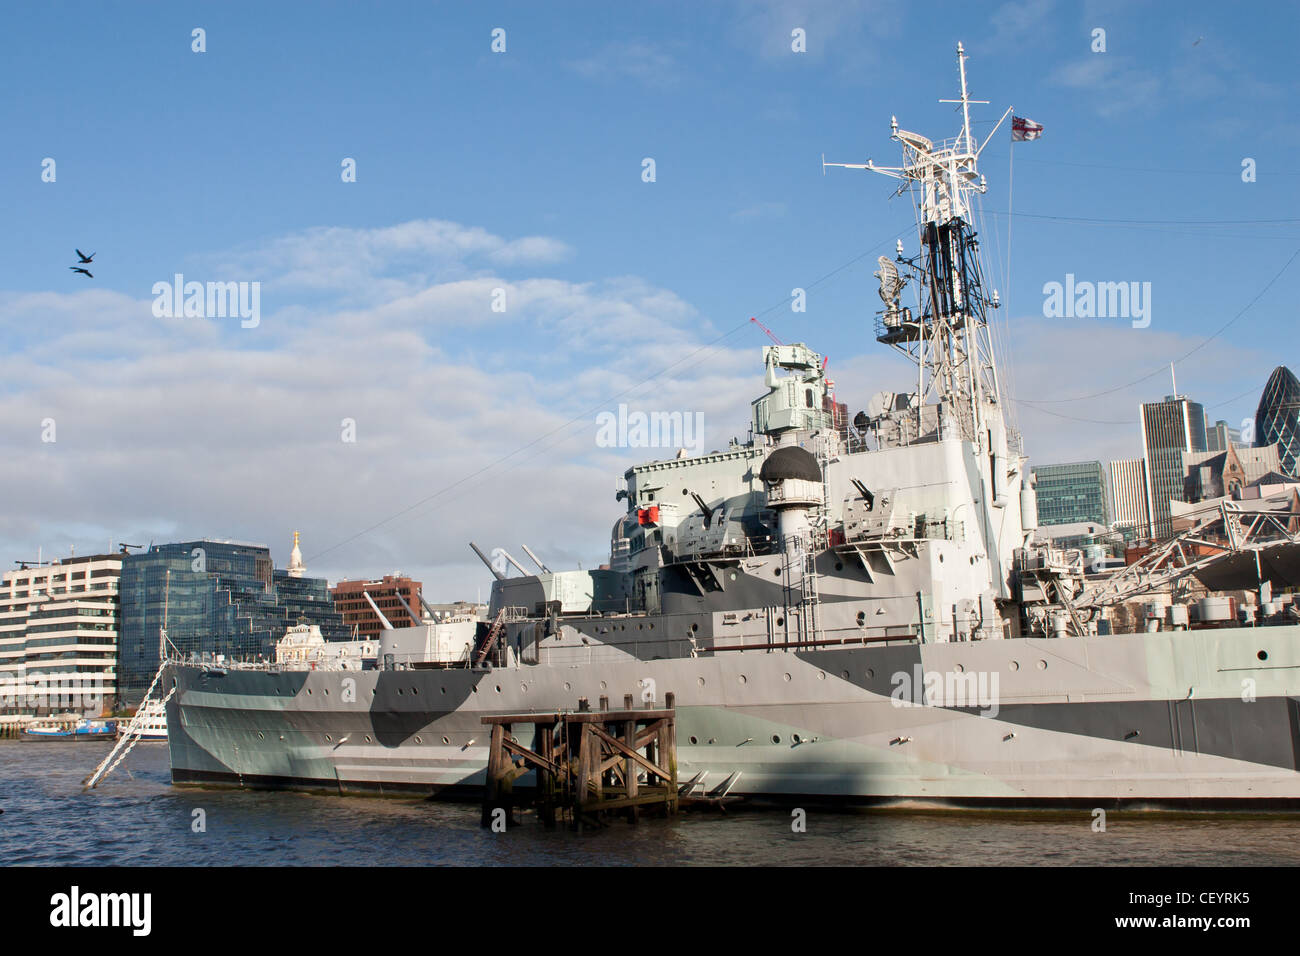 HMS Belfast moored on the River Thames, London. - Stock Image